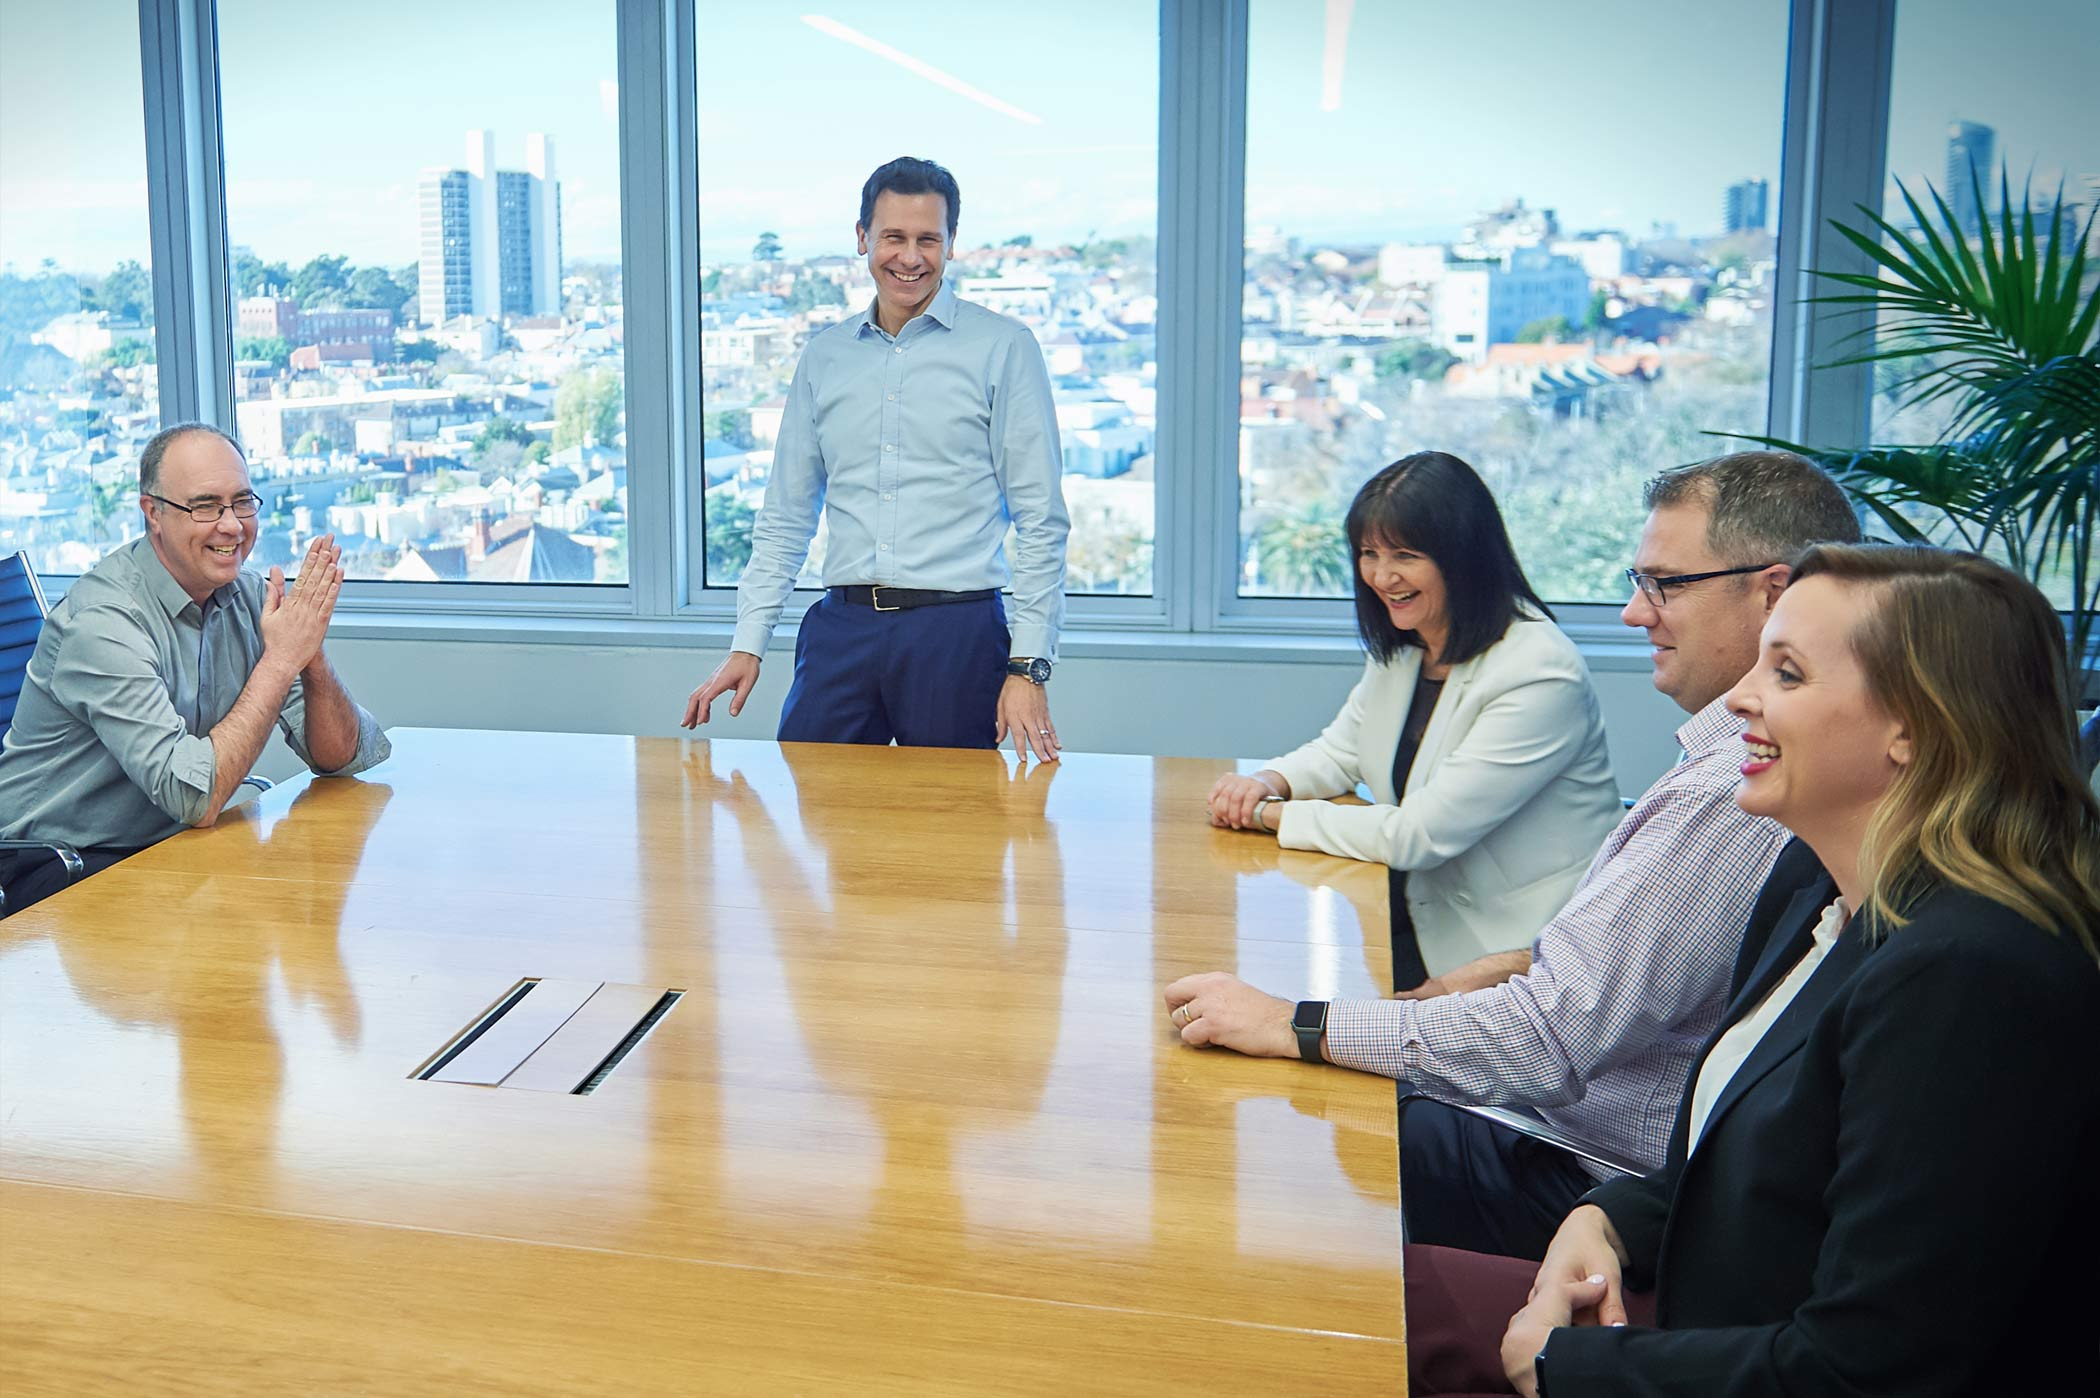 Leadership team in a boardroom meeting